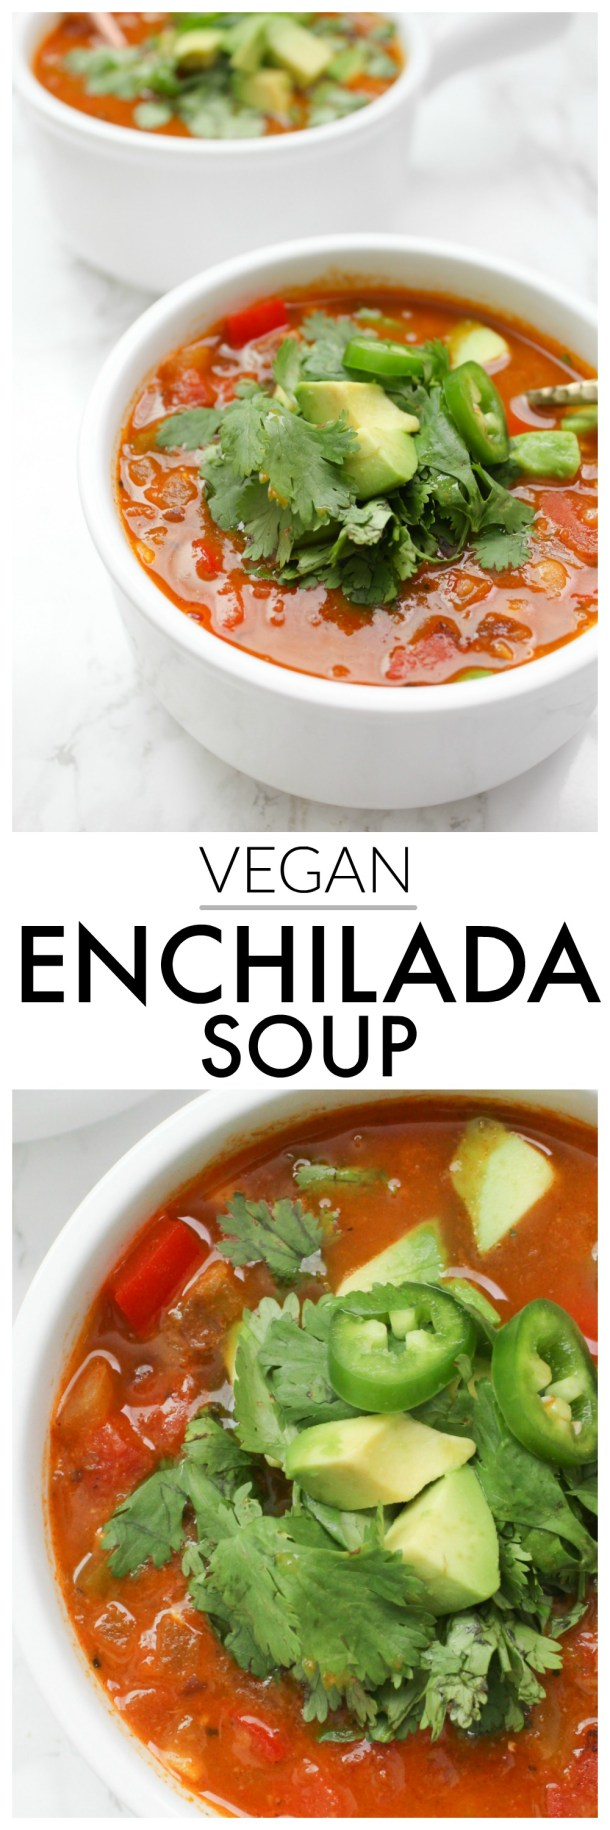 This Vegan Enchilada Soup is loaded with fresh veggies and two types of beans - ready in 30 minutes and packed with tons of flavor! | ThisSavoryVegan.com #thissavoryvegan #vegansoup #vegan